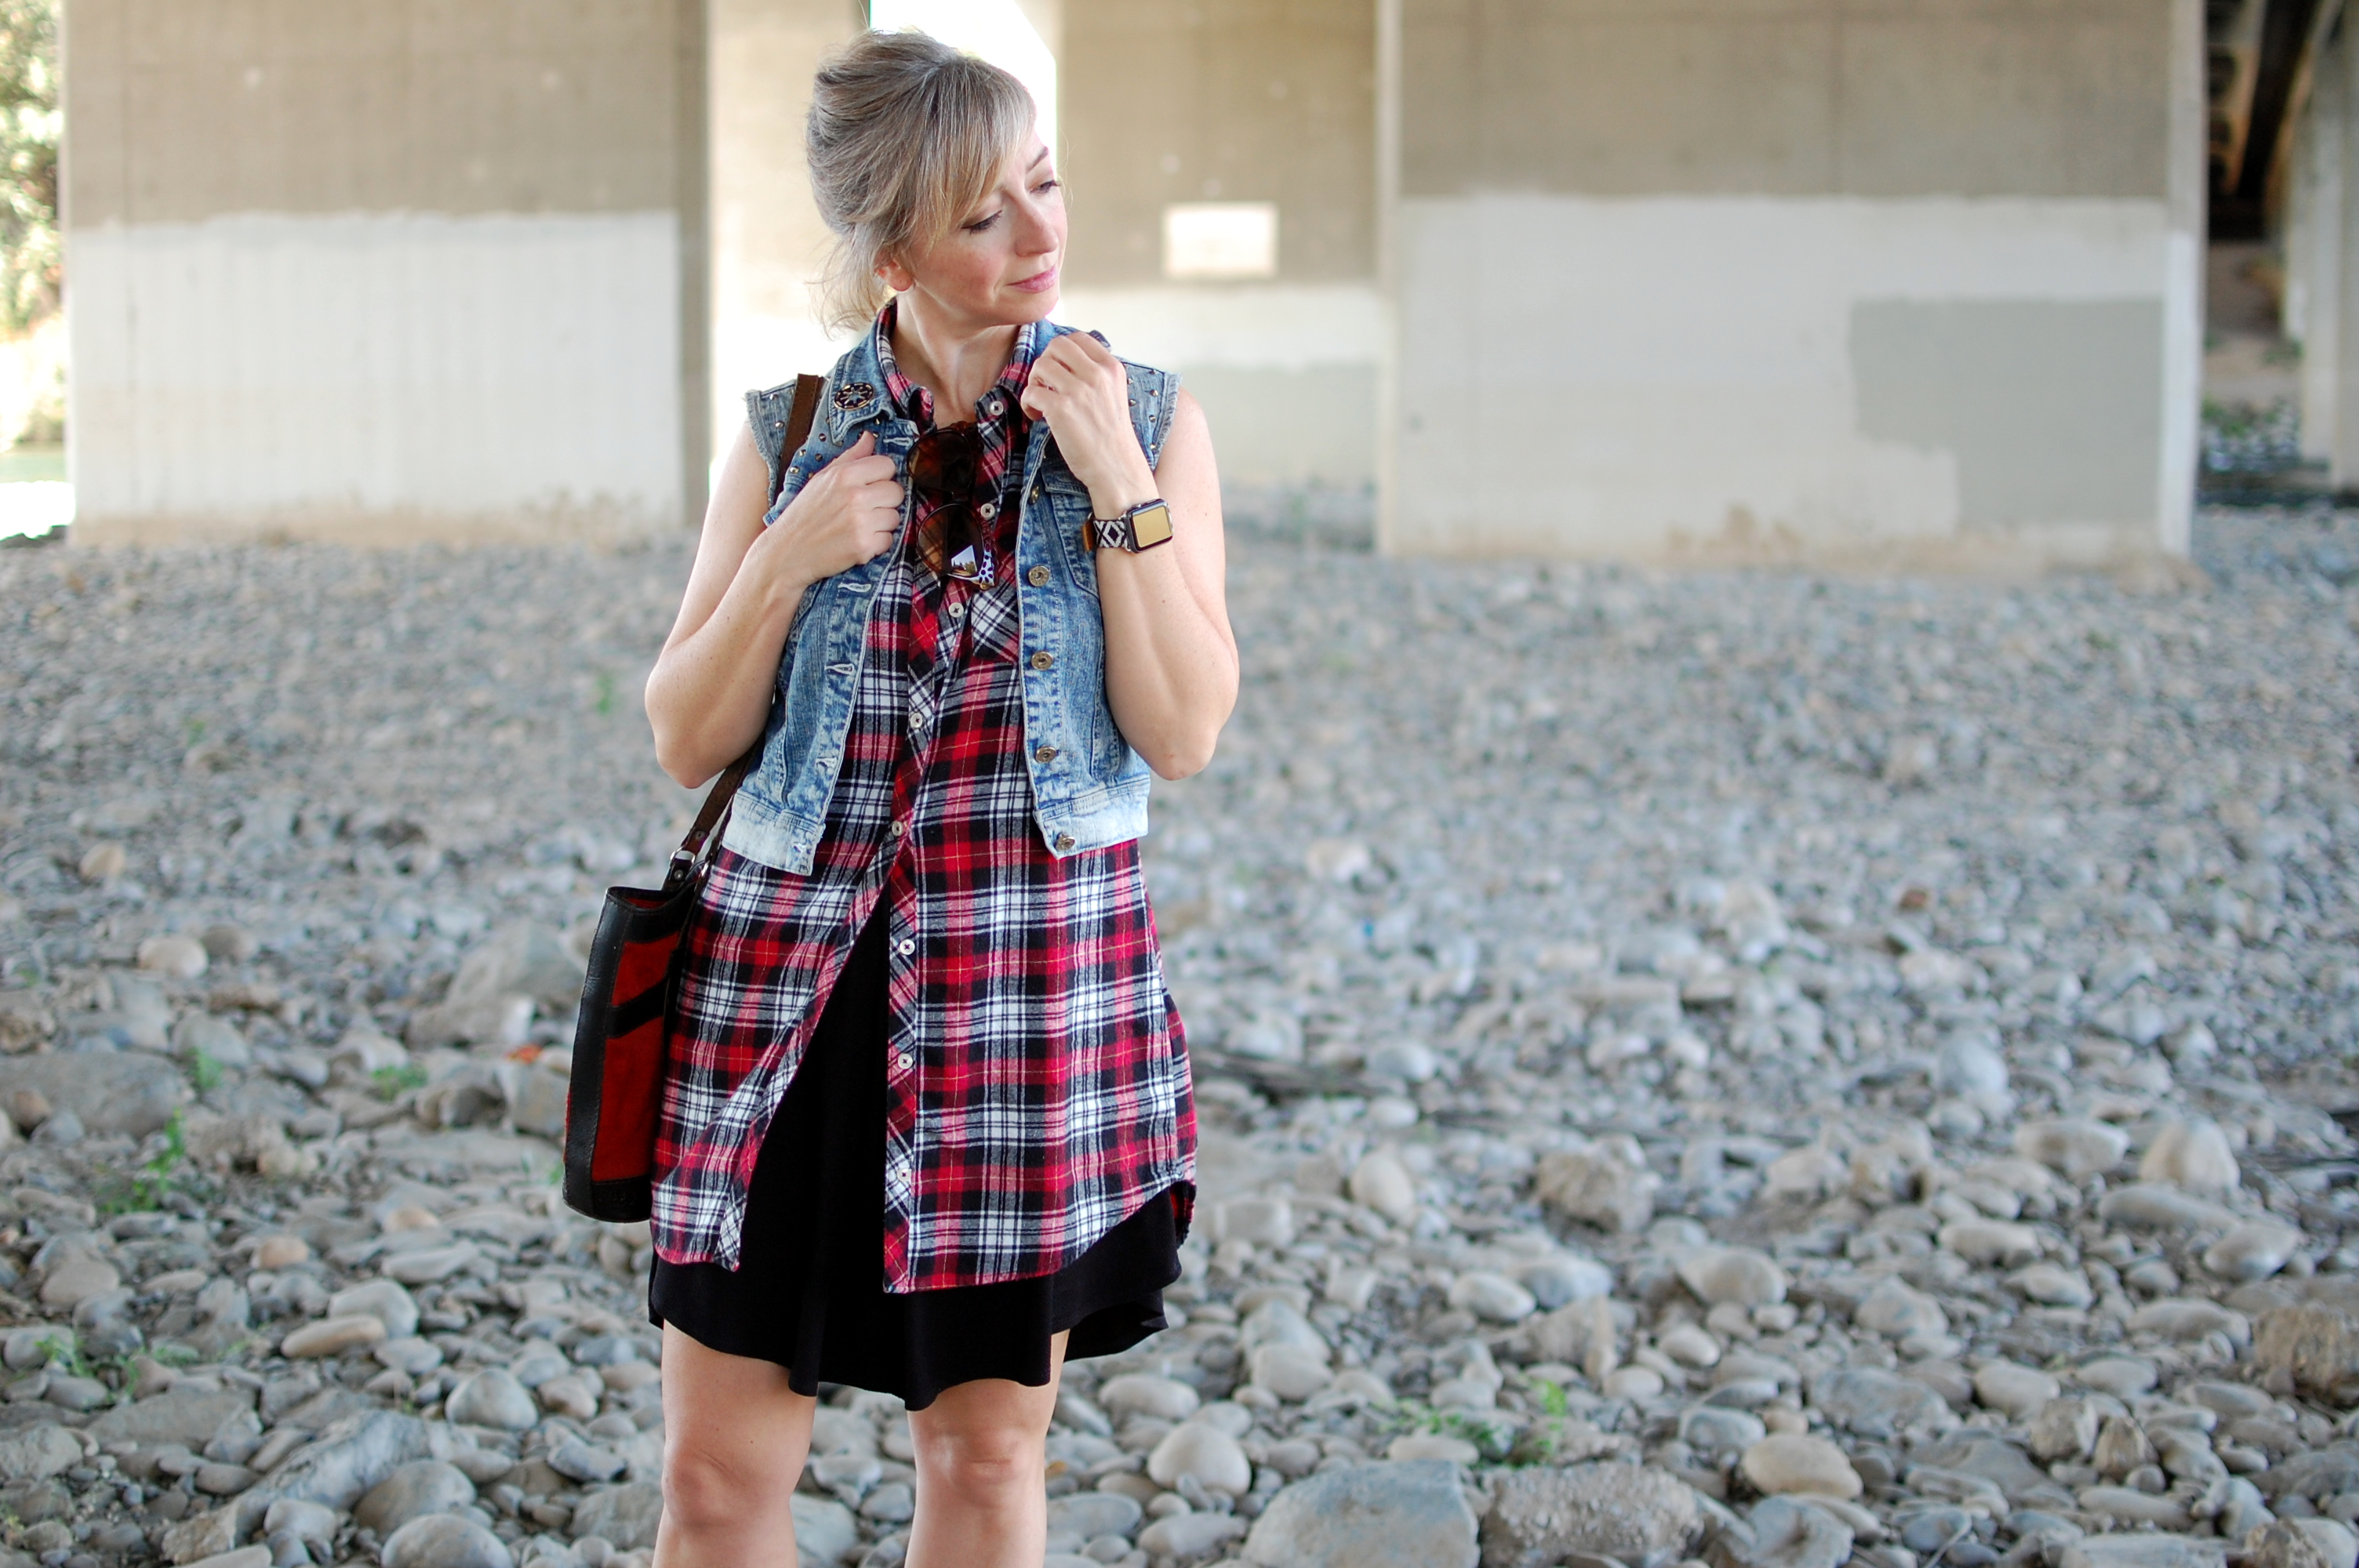 flannel tunic denim vest suede vest ootd casual daily outfit blog whatiwore2day